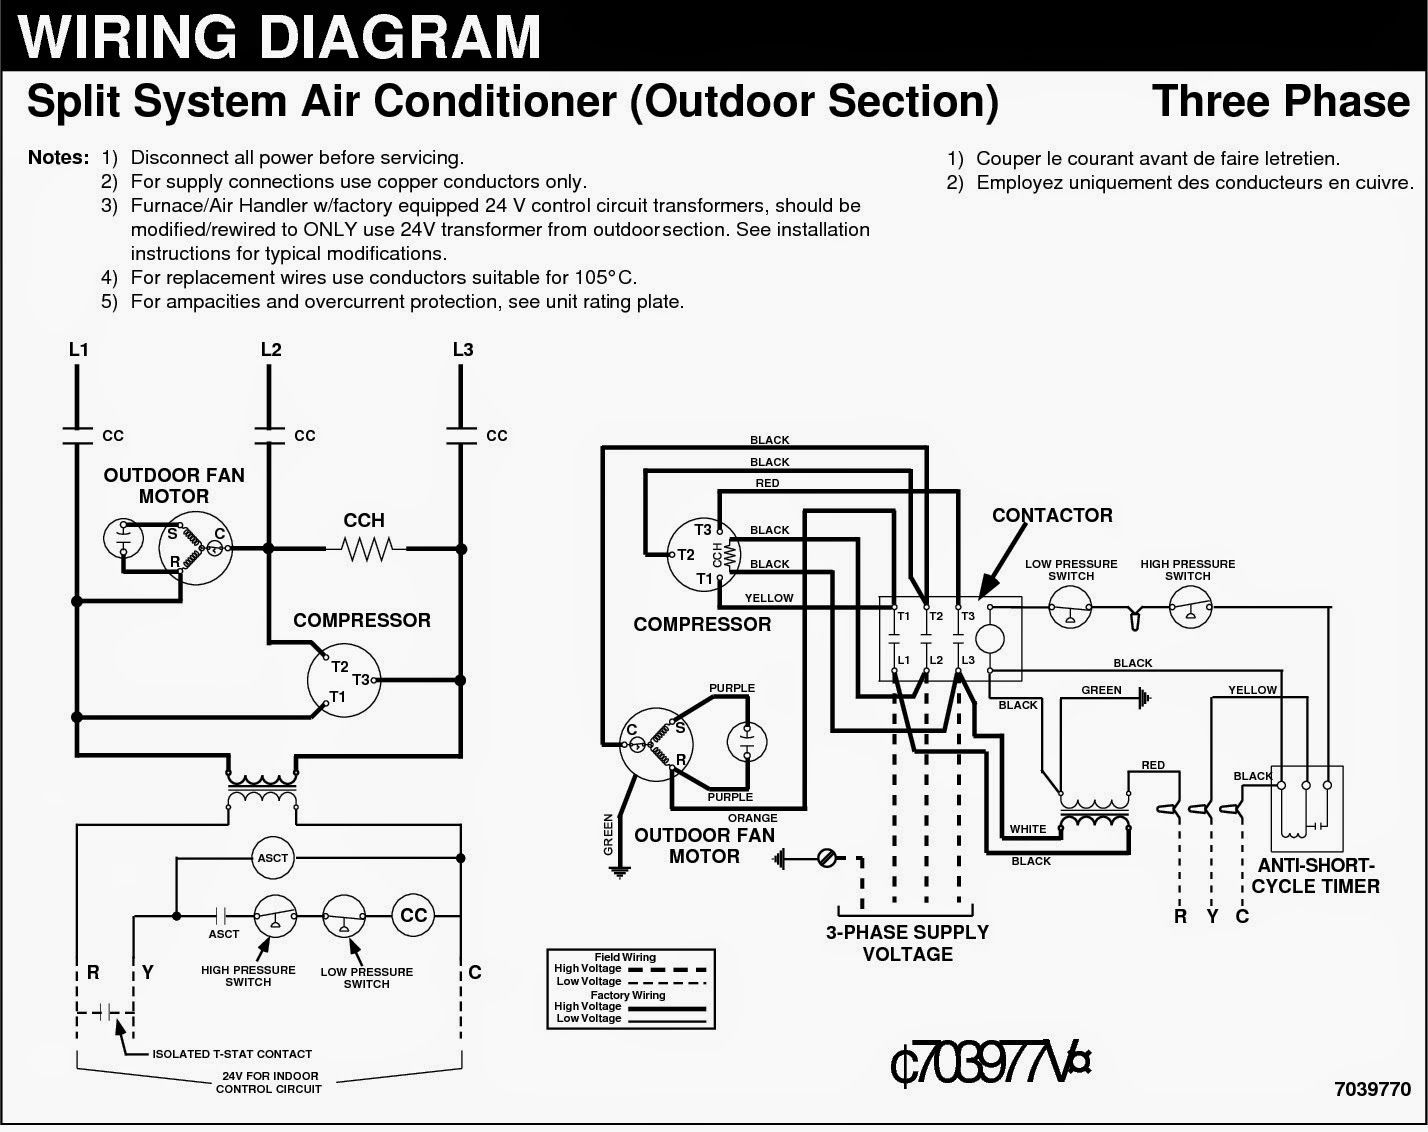 Perfect 3 Phase Wiring Diagram For House Ac Wiring Circuits Wiring Diagramac Wiring Circui Electrical Wiring Diagram Electrical Diagram Air Conditioning System